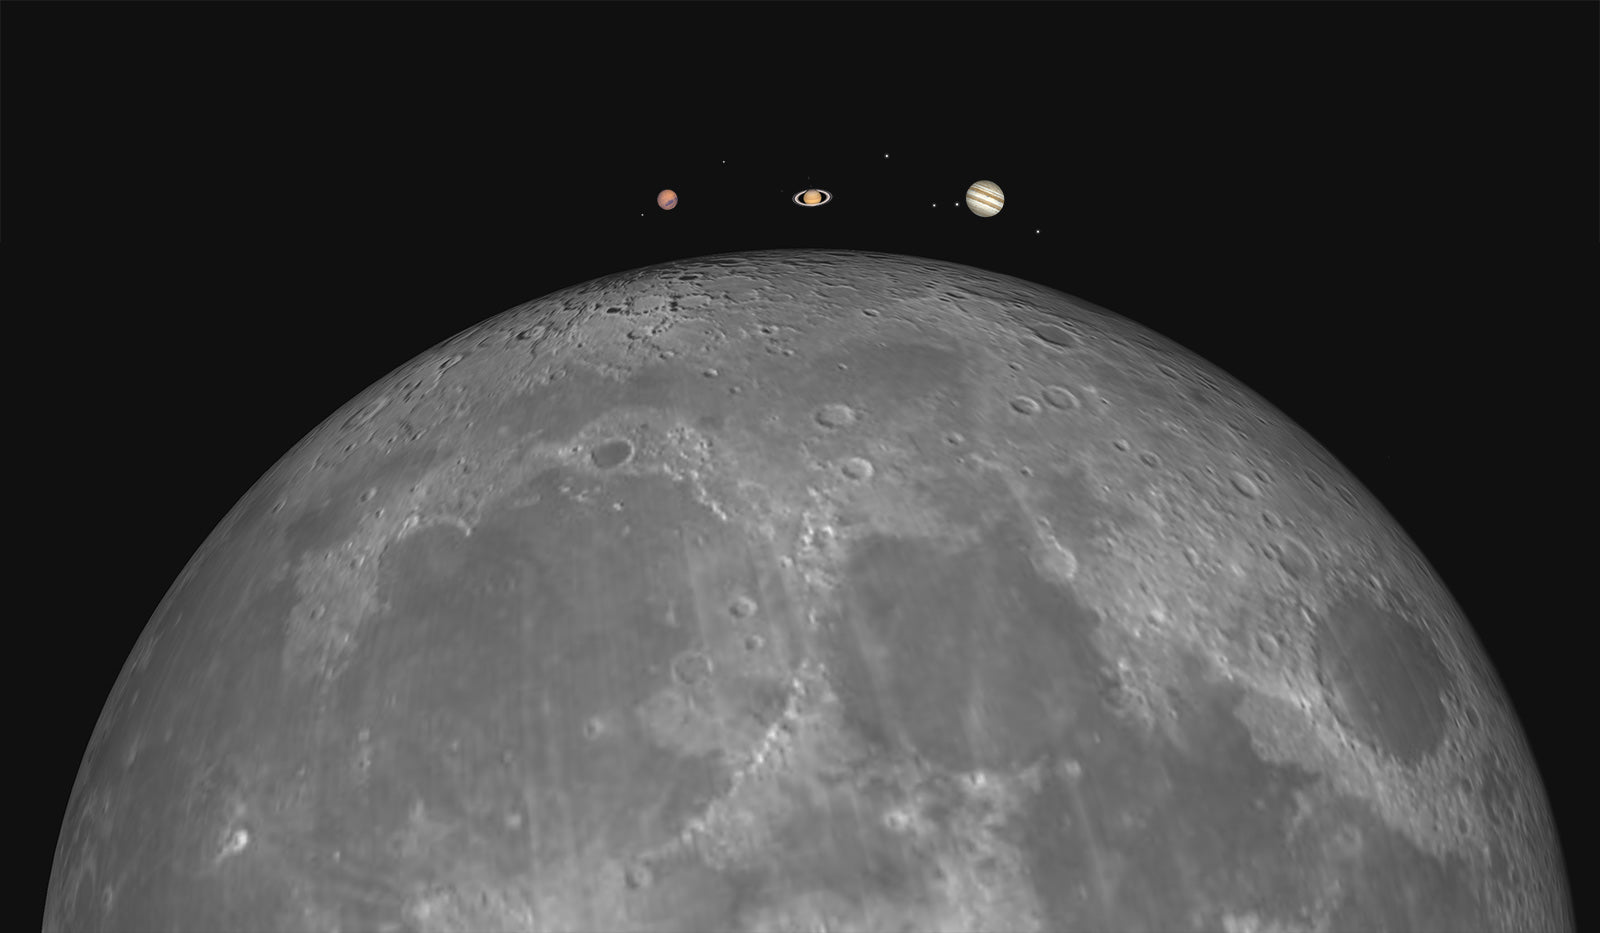 Mars, Saturn, and Jupiter relative sizes to the Moon when at 2018 oppositions